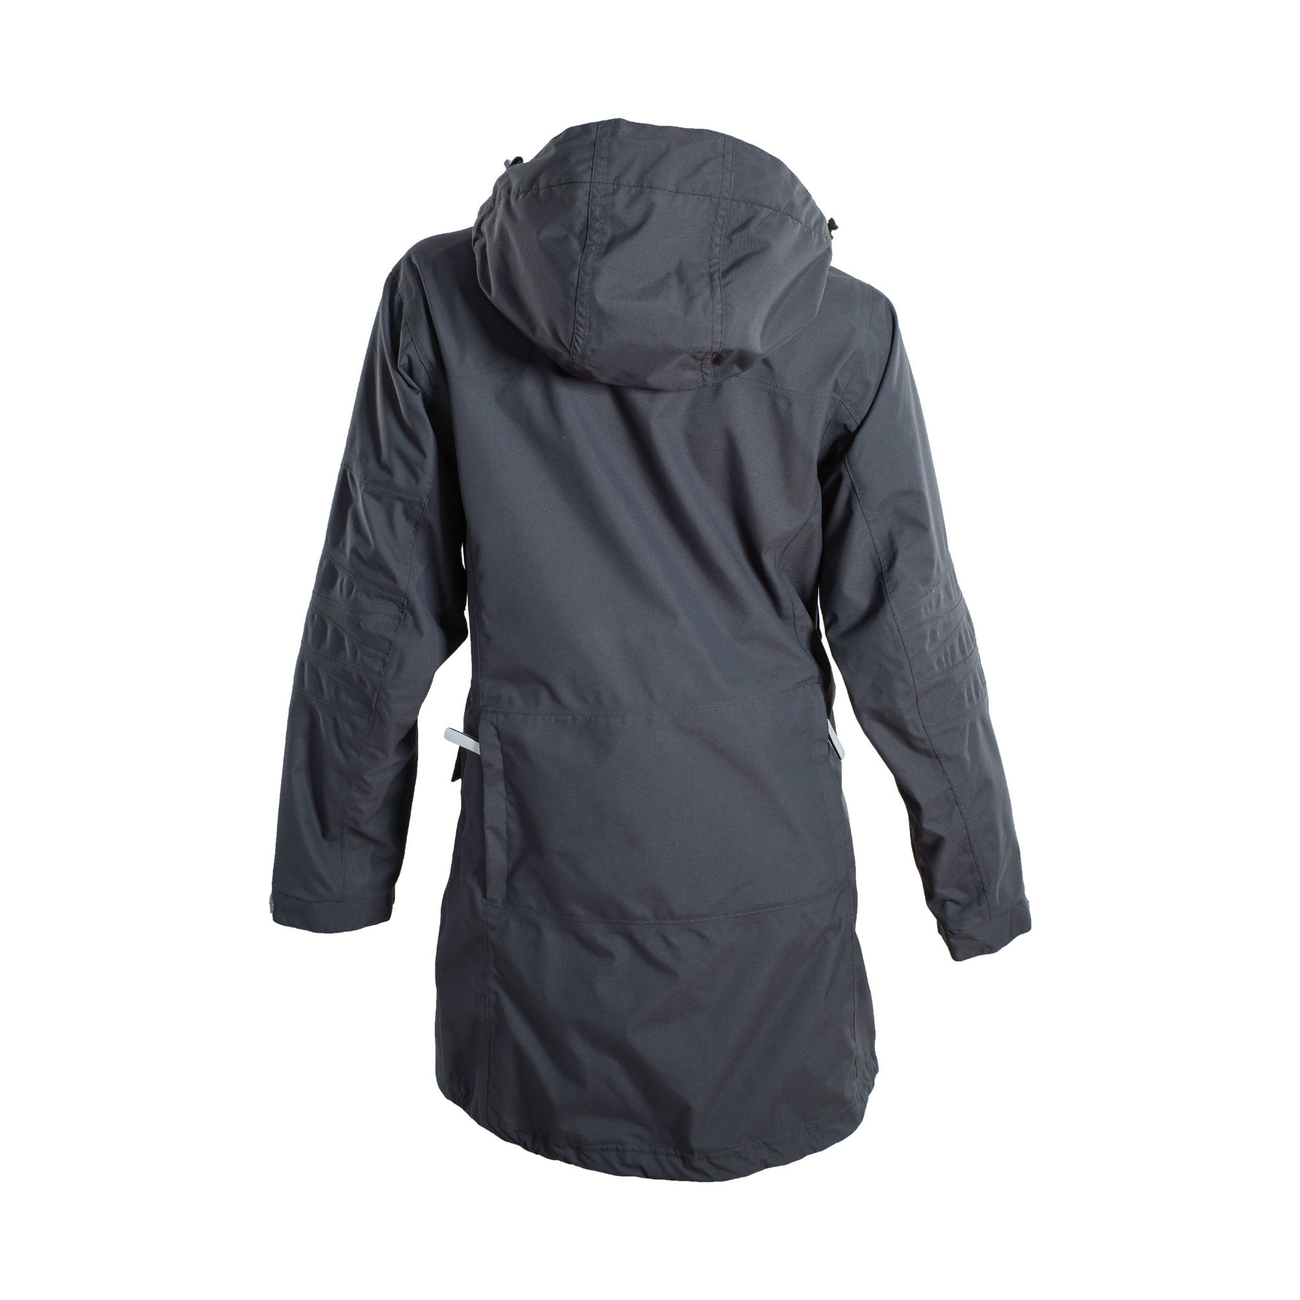 Owney Outdoor Damenparka Arnauti, Bild 7